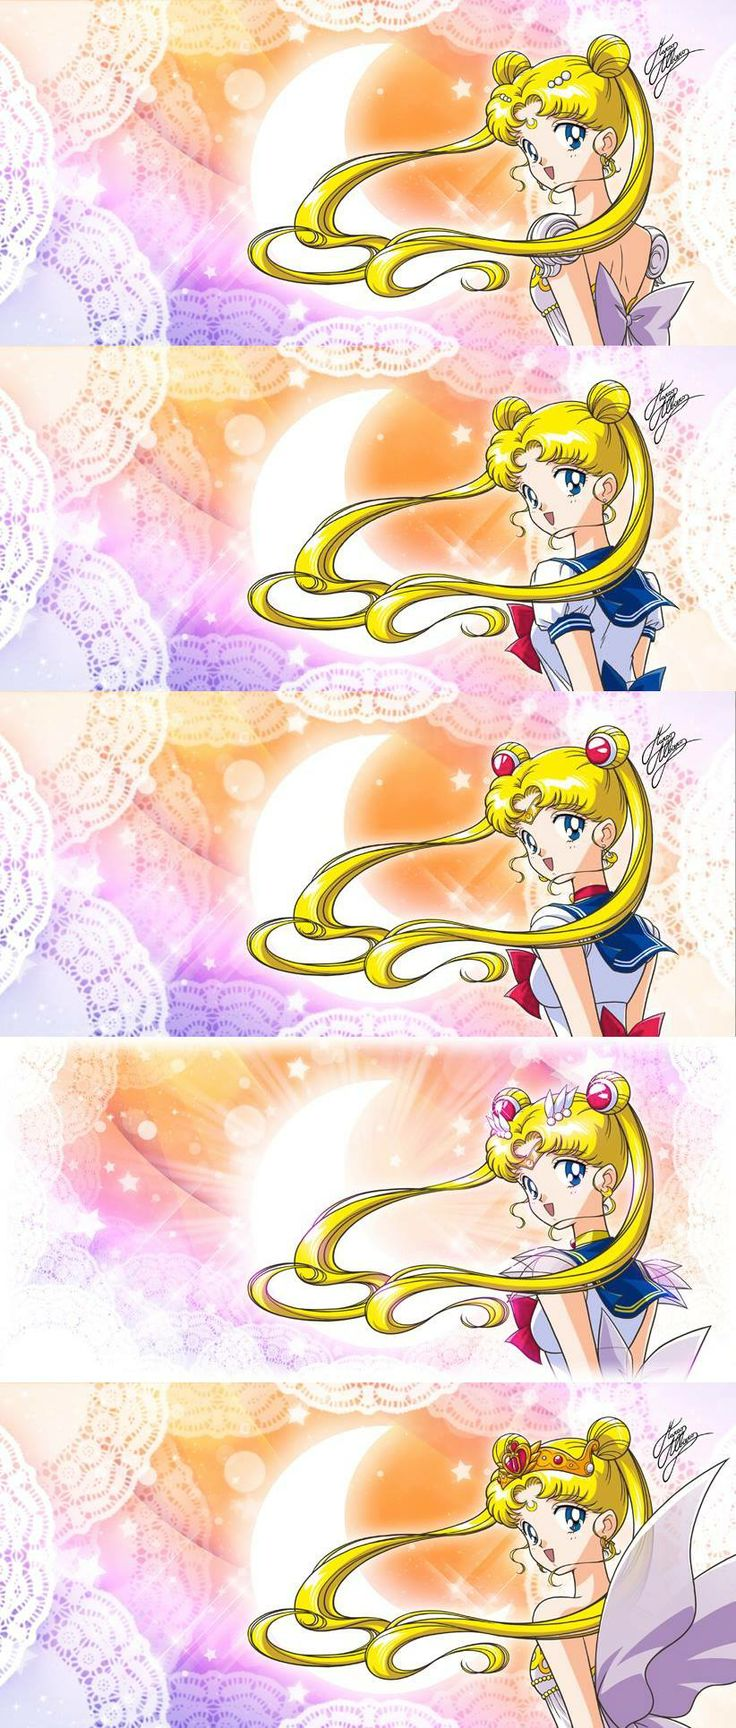 The Many Phases of the Moon | art by Marco Albiero; for the official Italian Sailor Moon World web site.